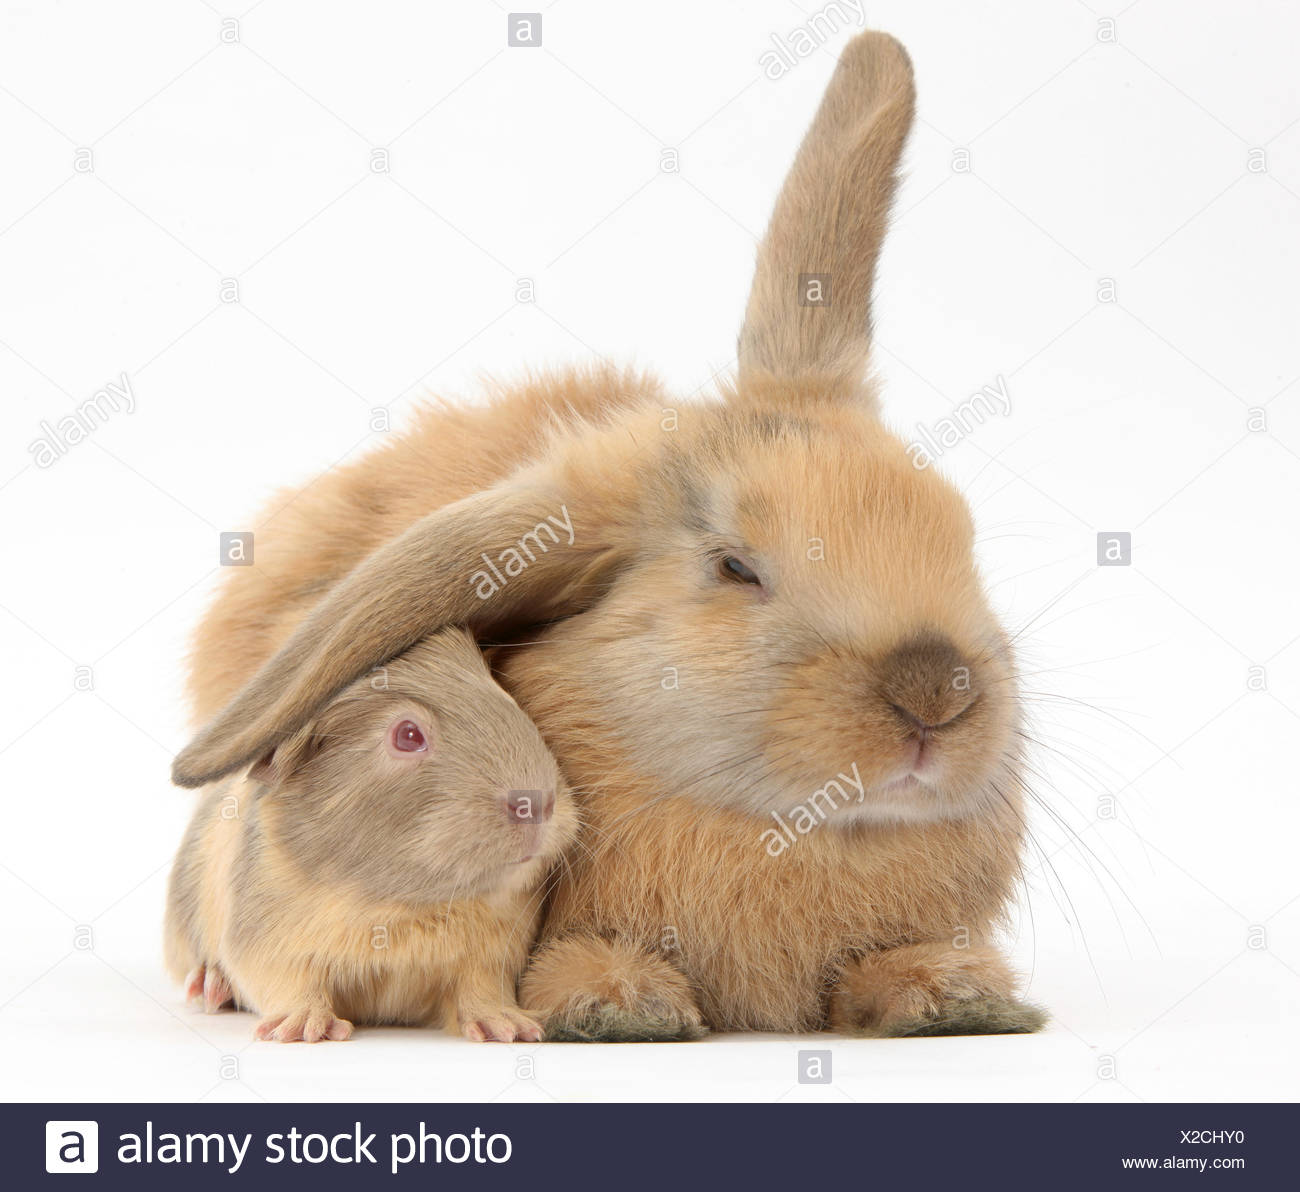 Young windmill-eared rabbit and matching guinea-pig. - Stock Image